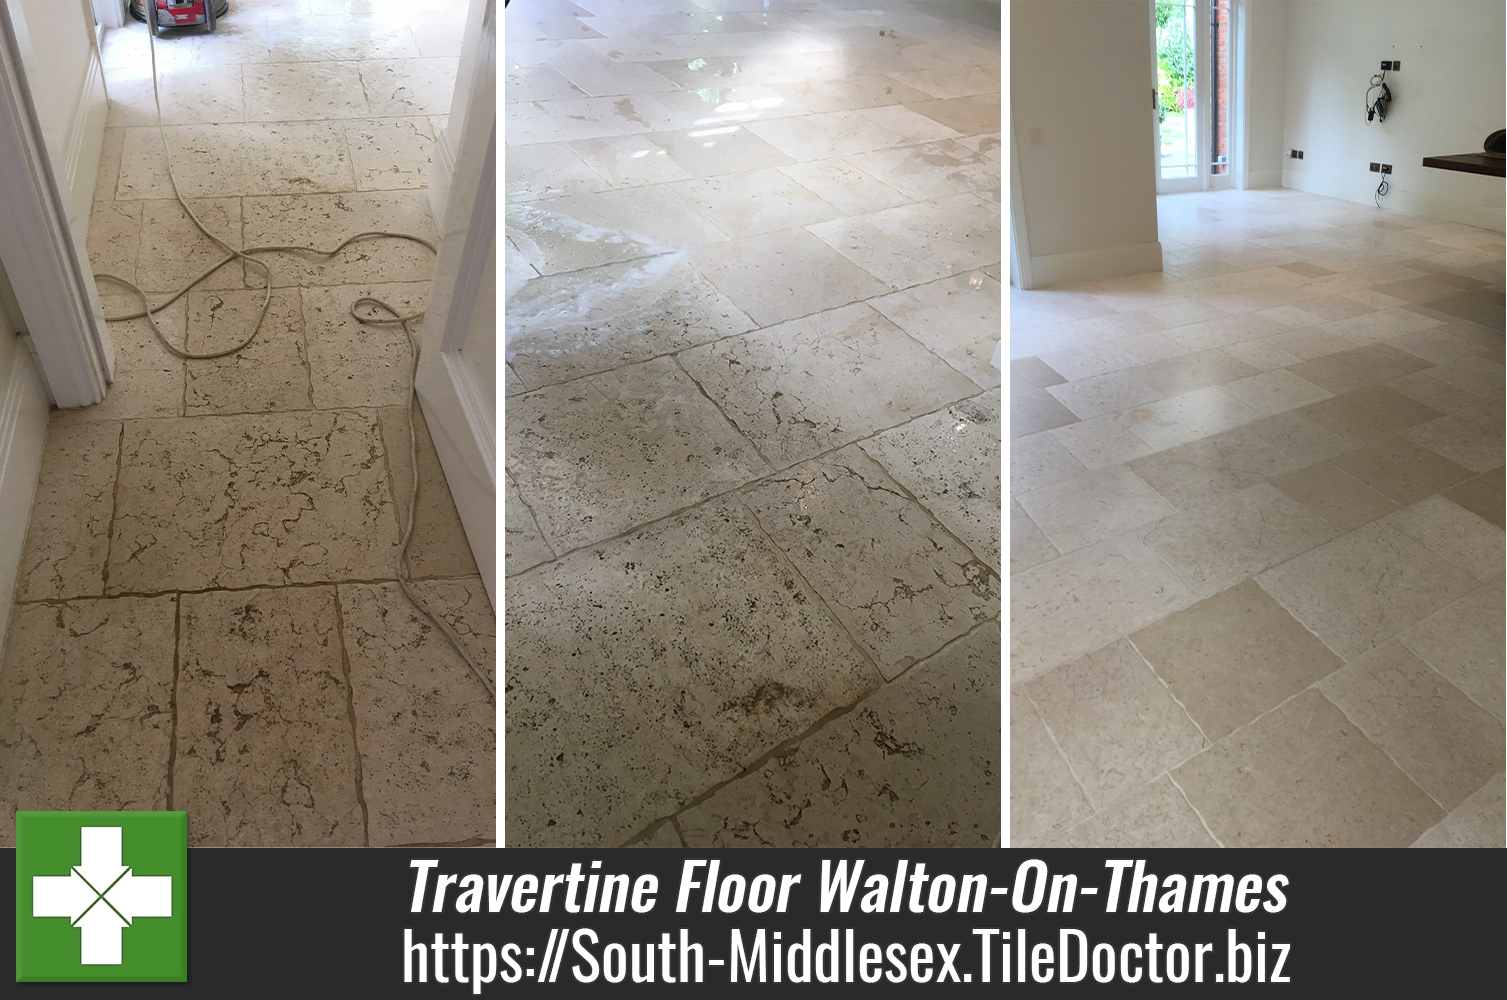 Travertine-Floor-Renovation-Walton-on-Thames-Middlesex